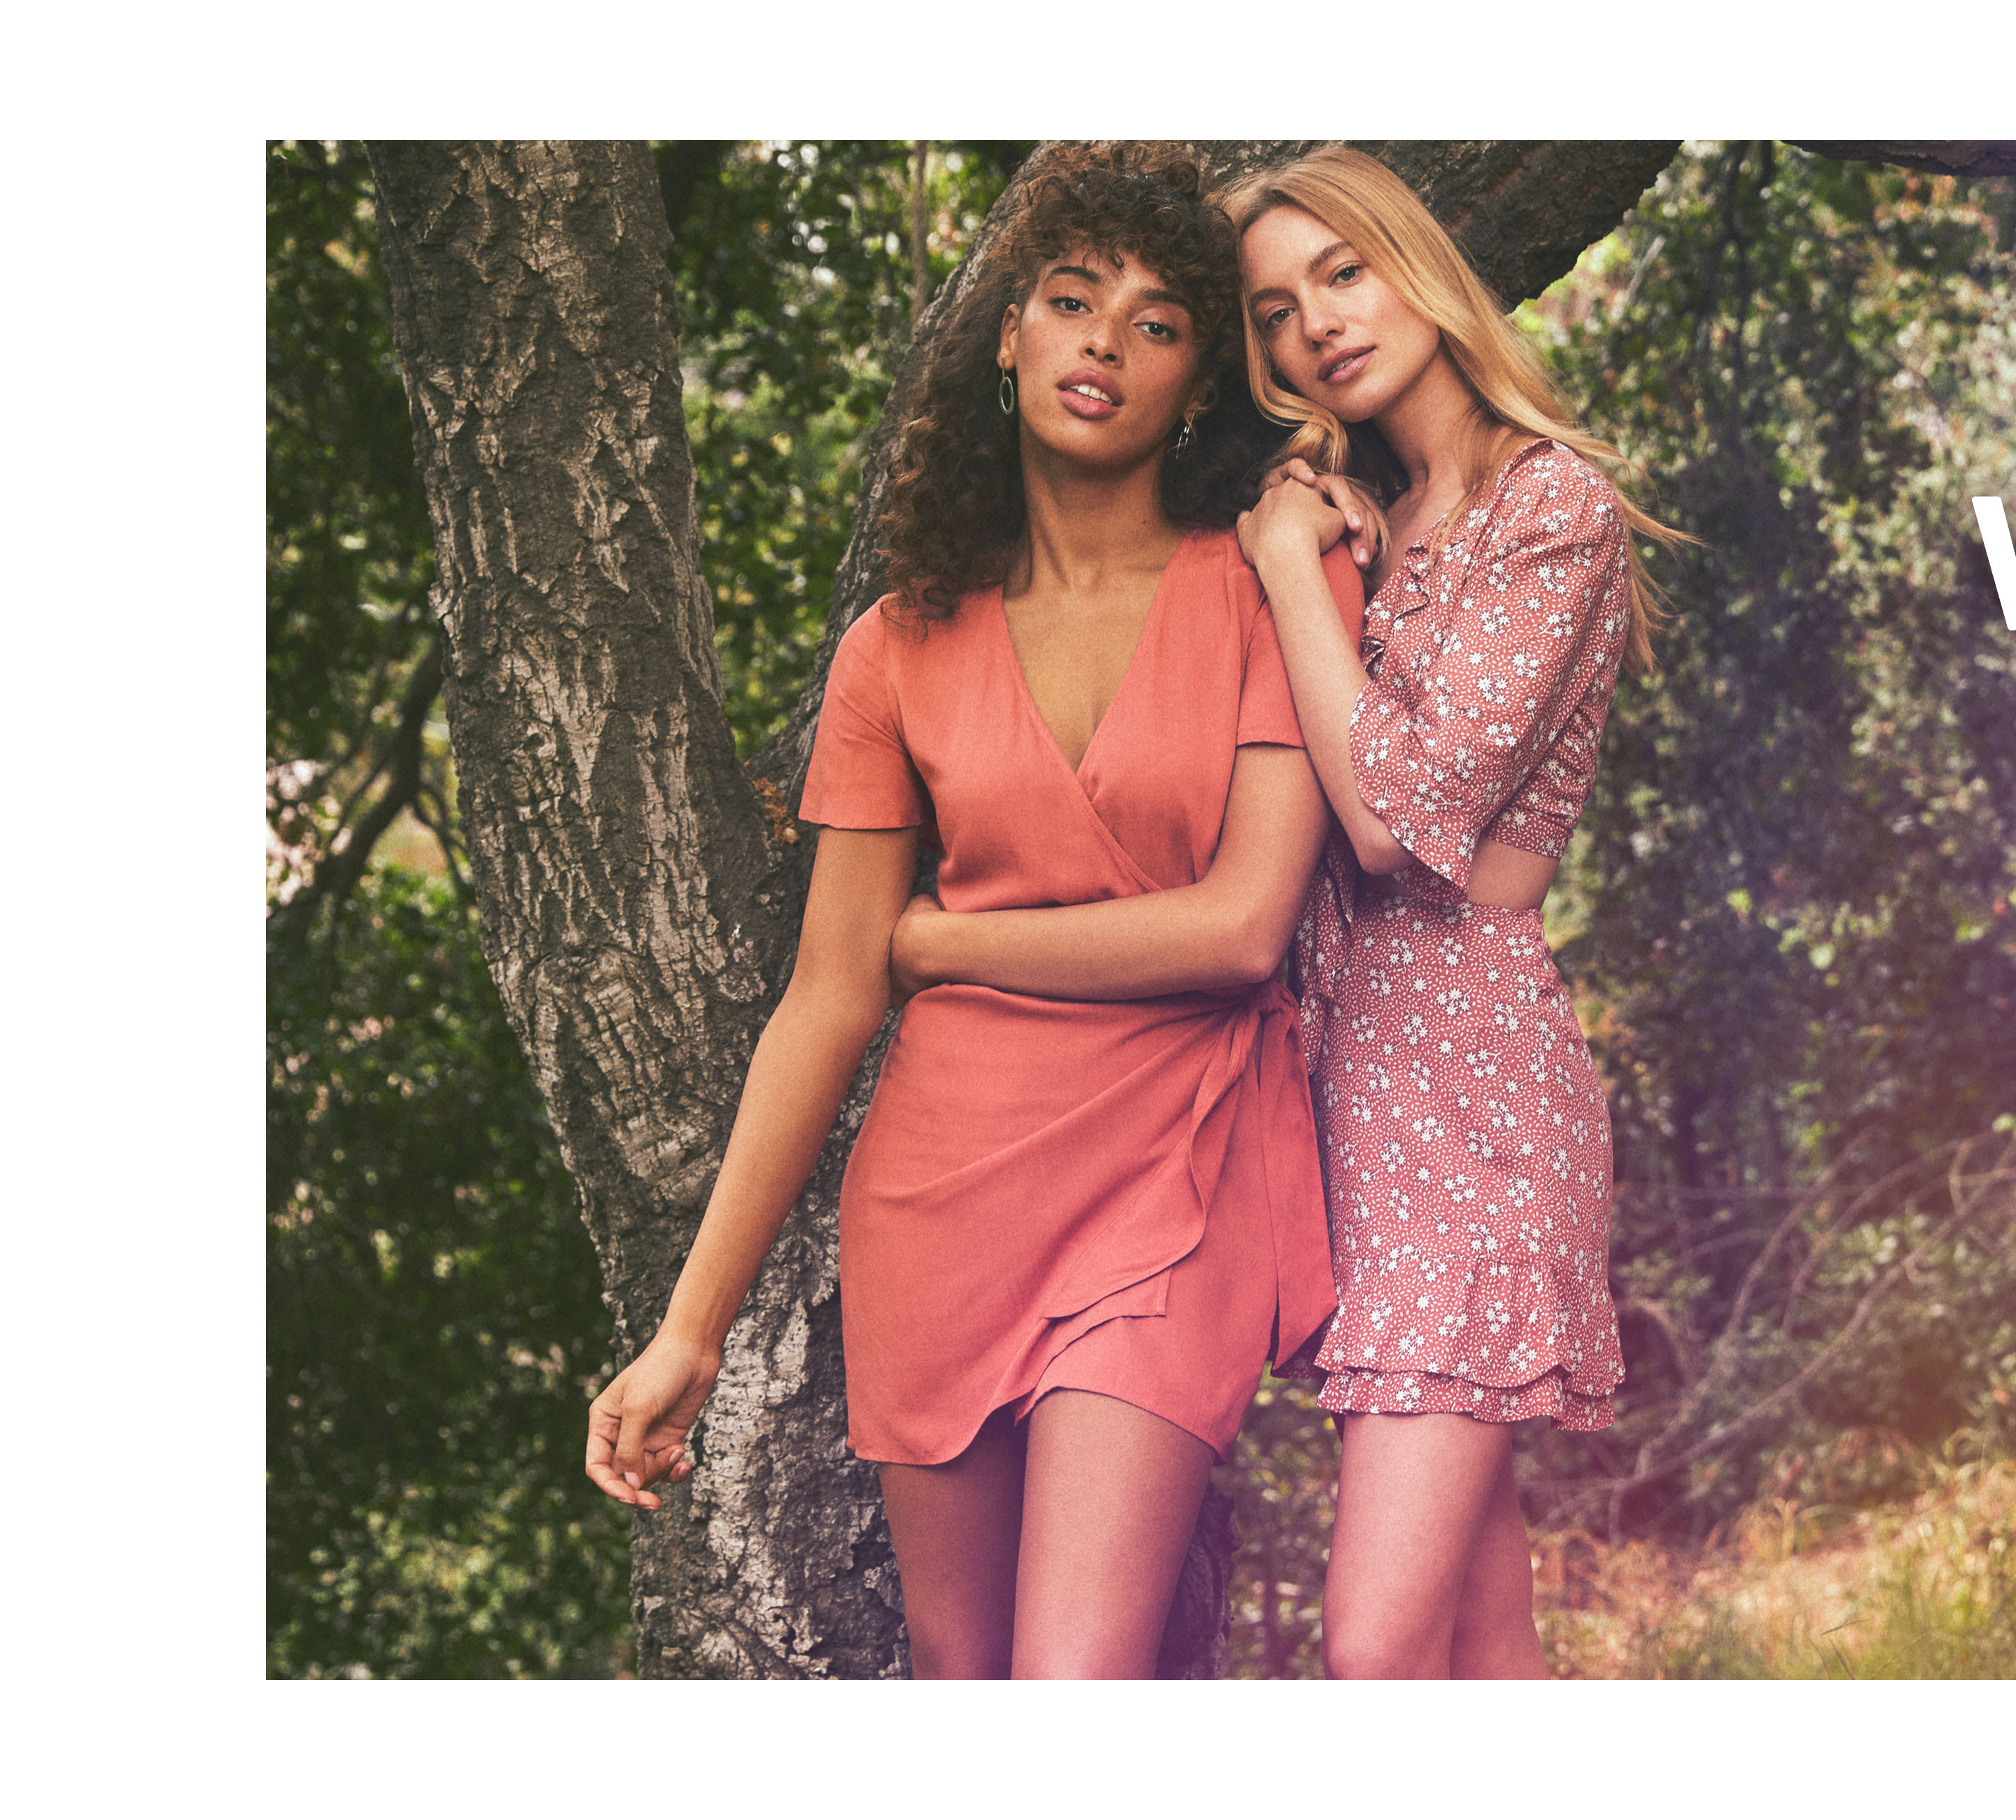 ec21102c92b2 models in short rose wrap dress and ditsy floral two piece set for vacation  ...